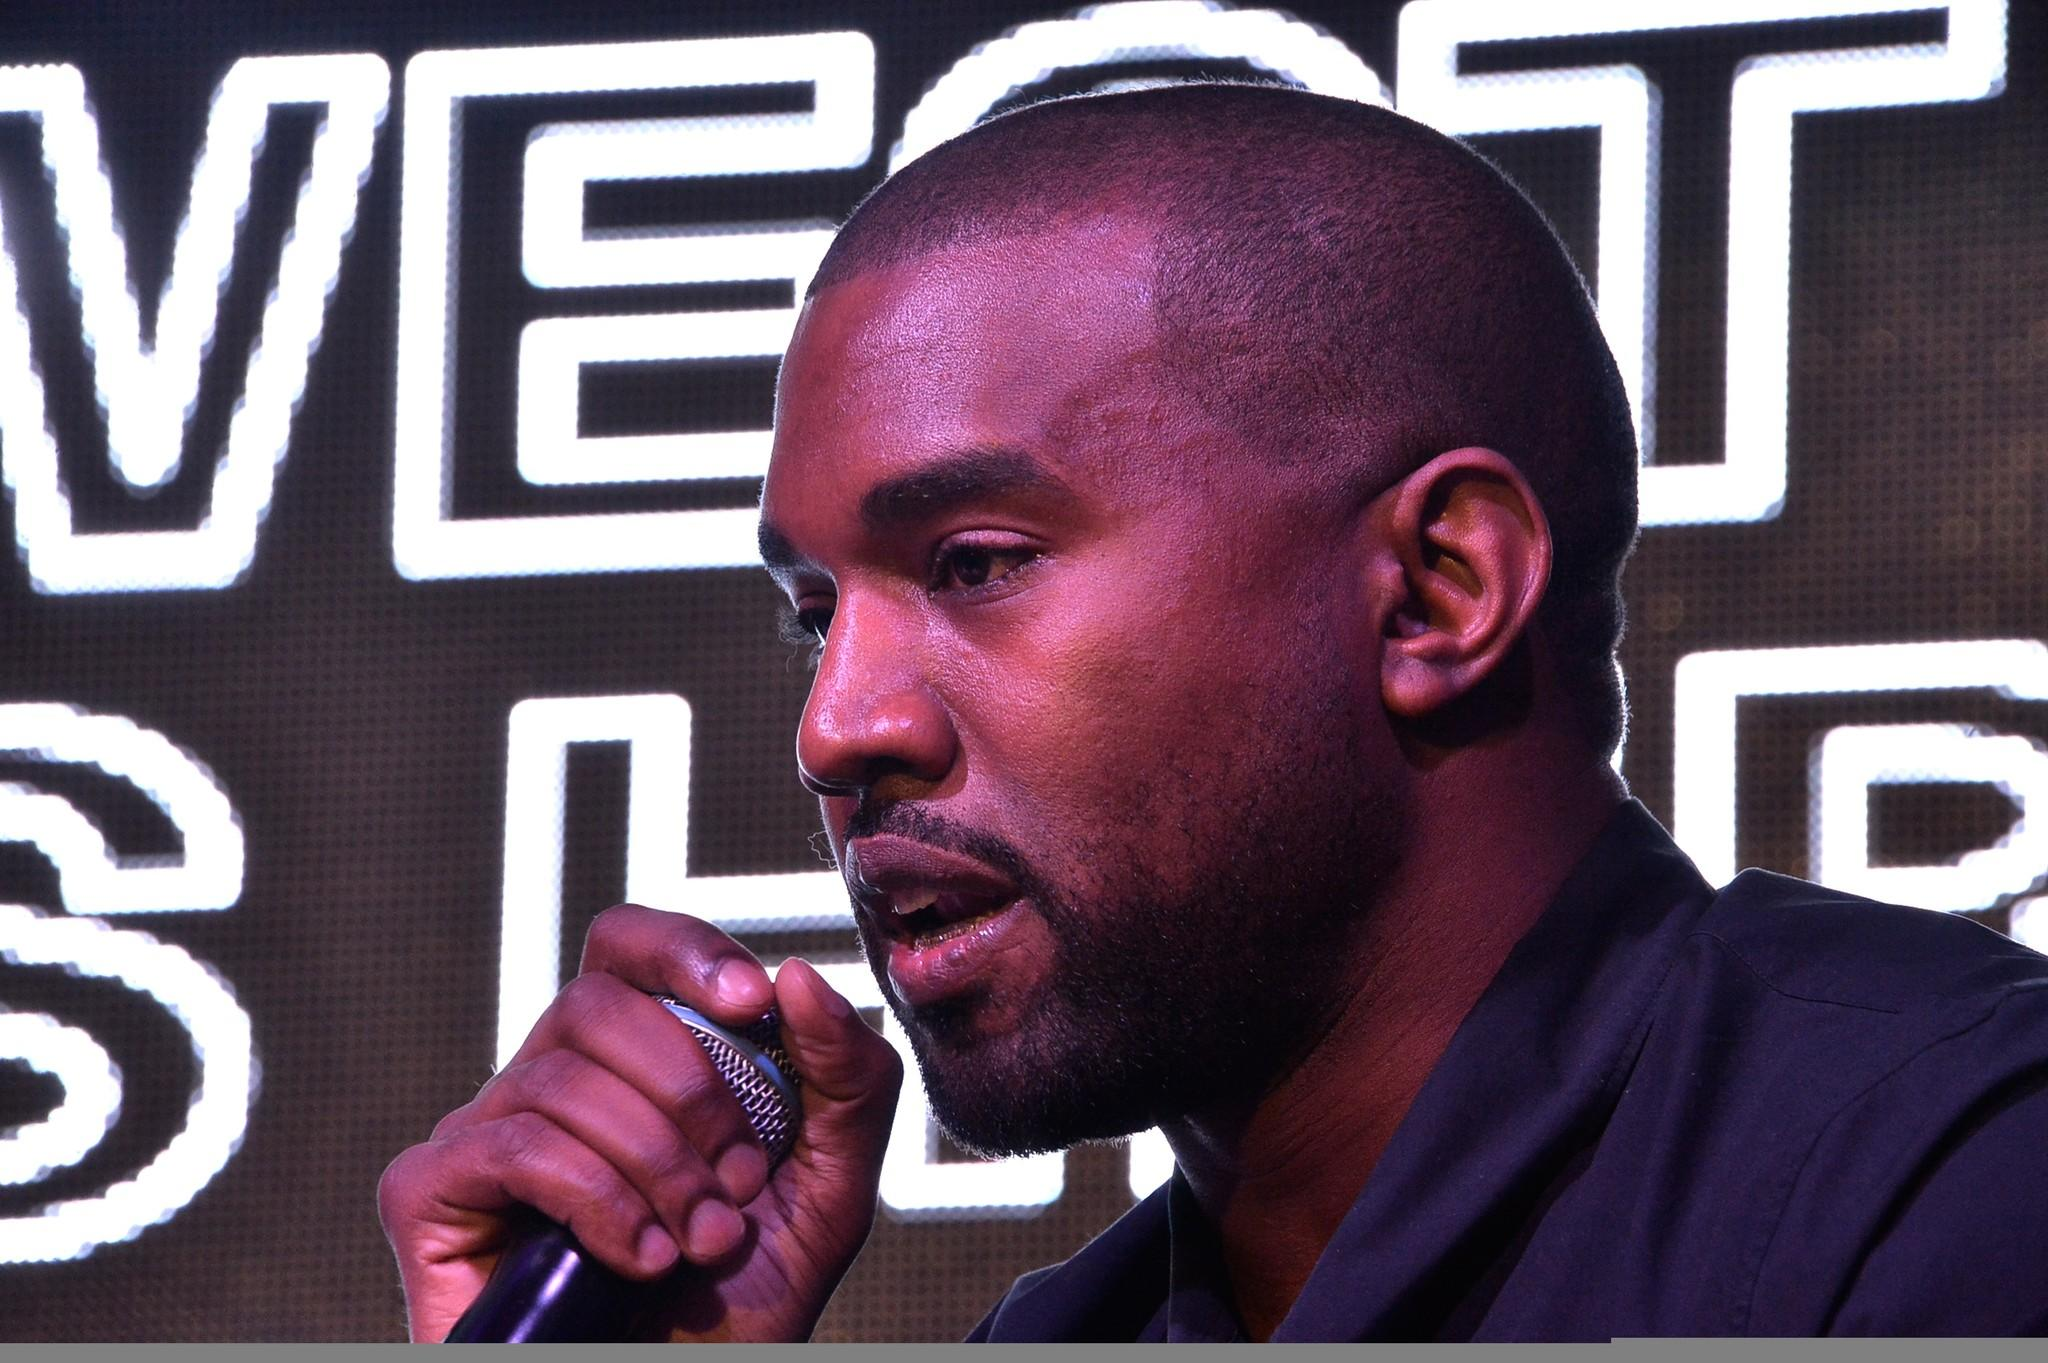 Kanye West speaking at event in Miami on Dec. 5.